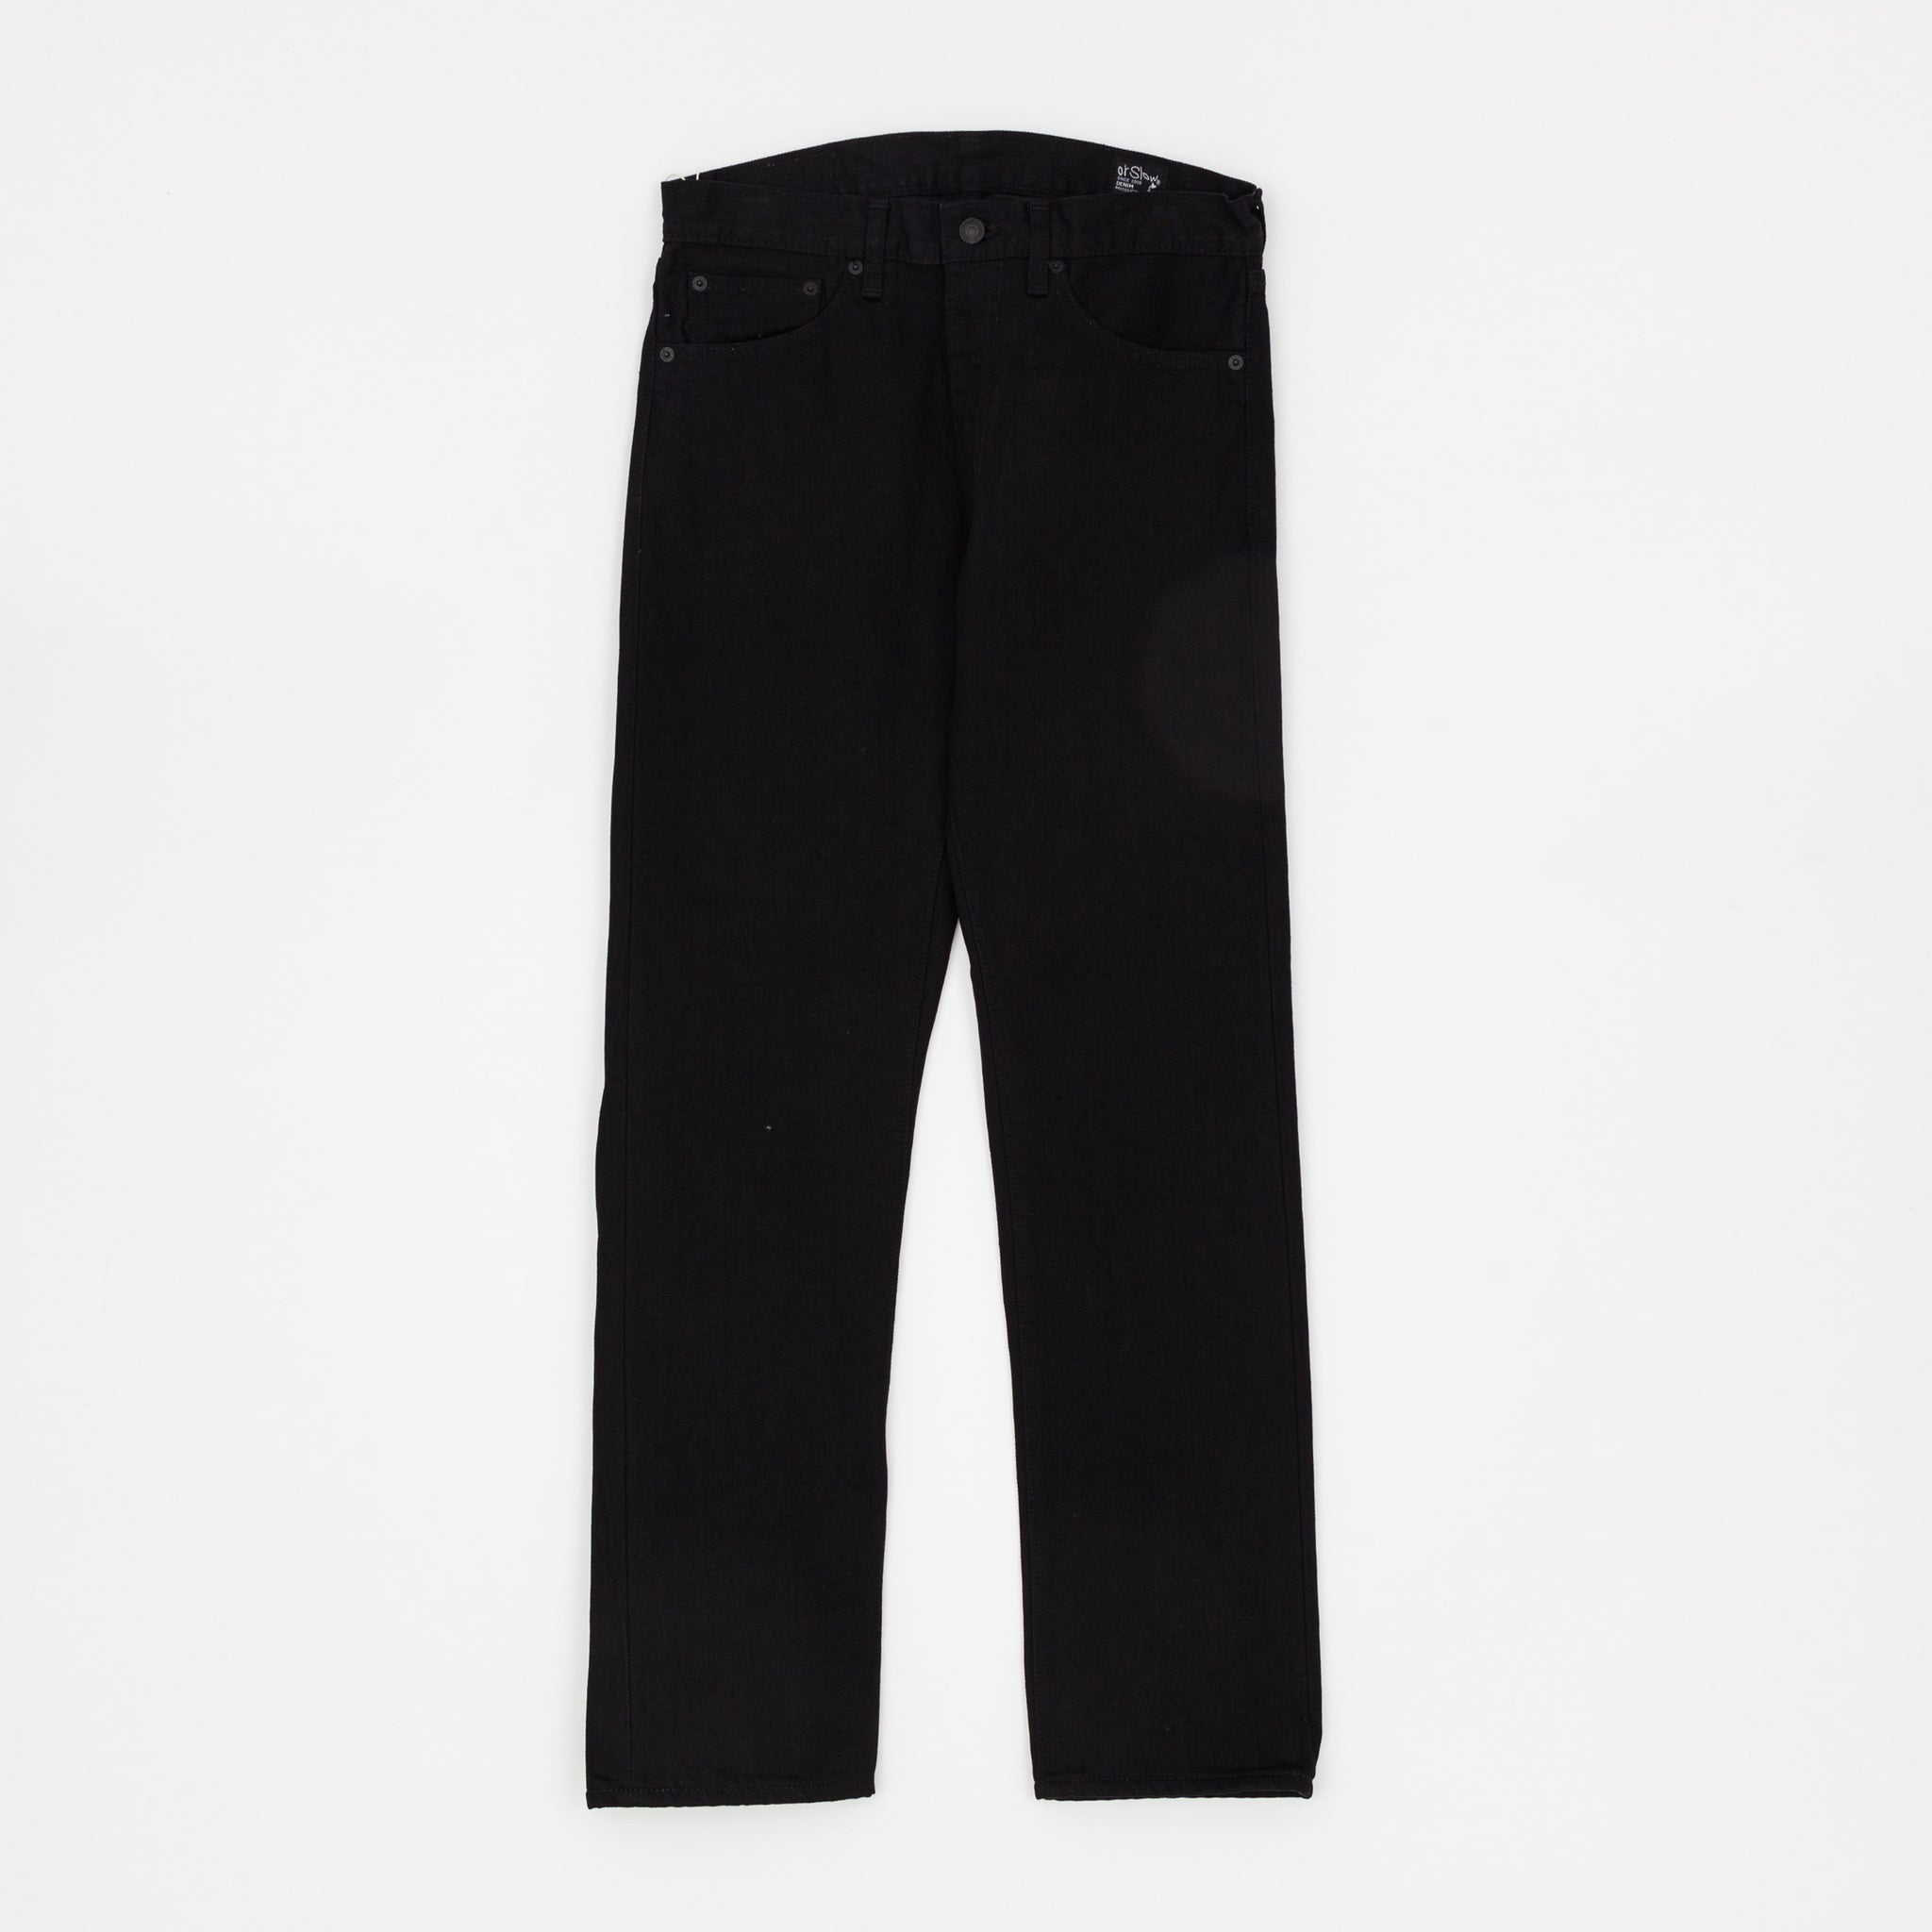 107 Slim Black Denim Pants